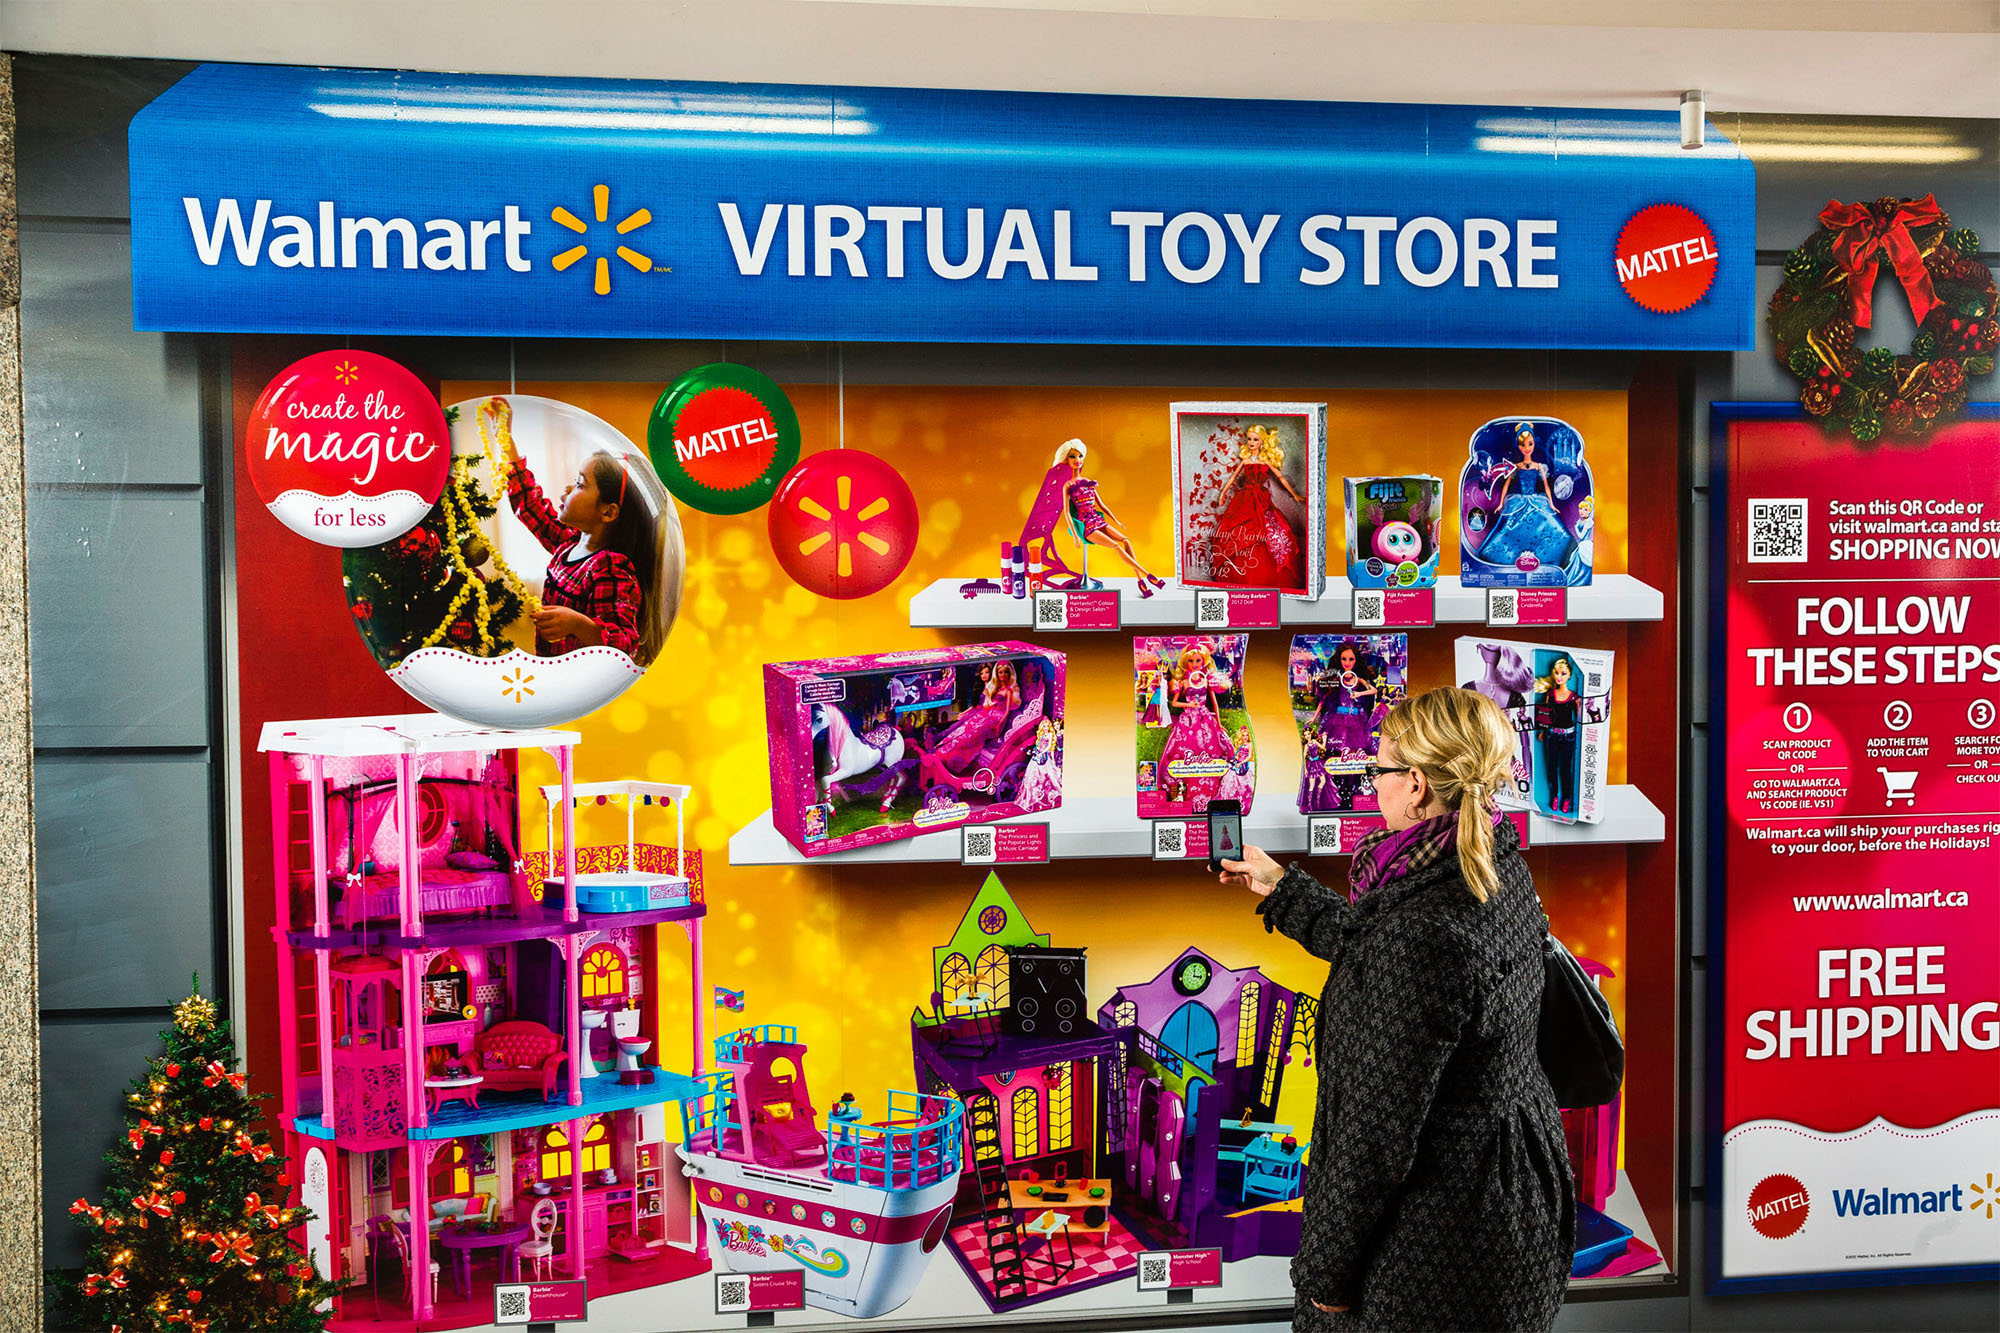 Top Five Toys for Your Holiday Shopping List